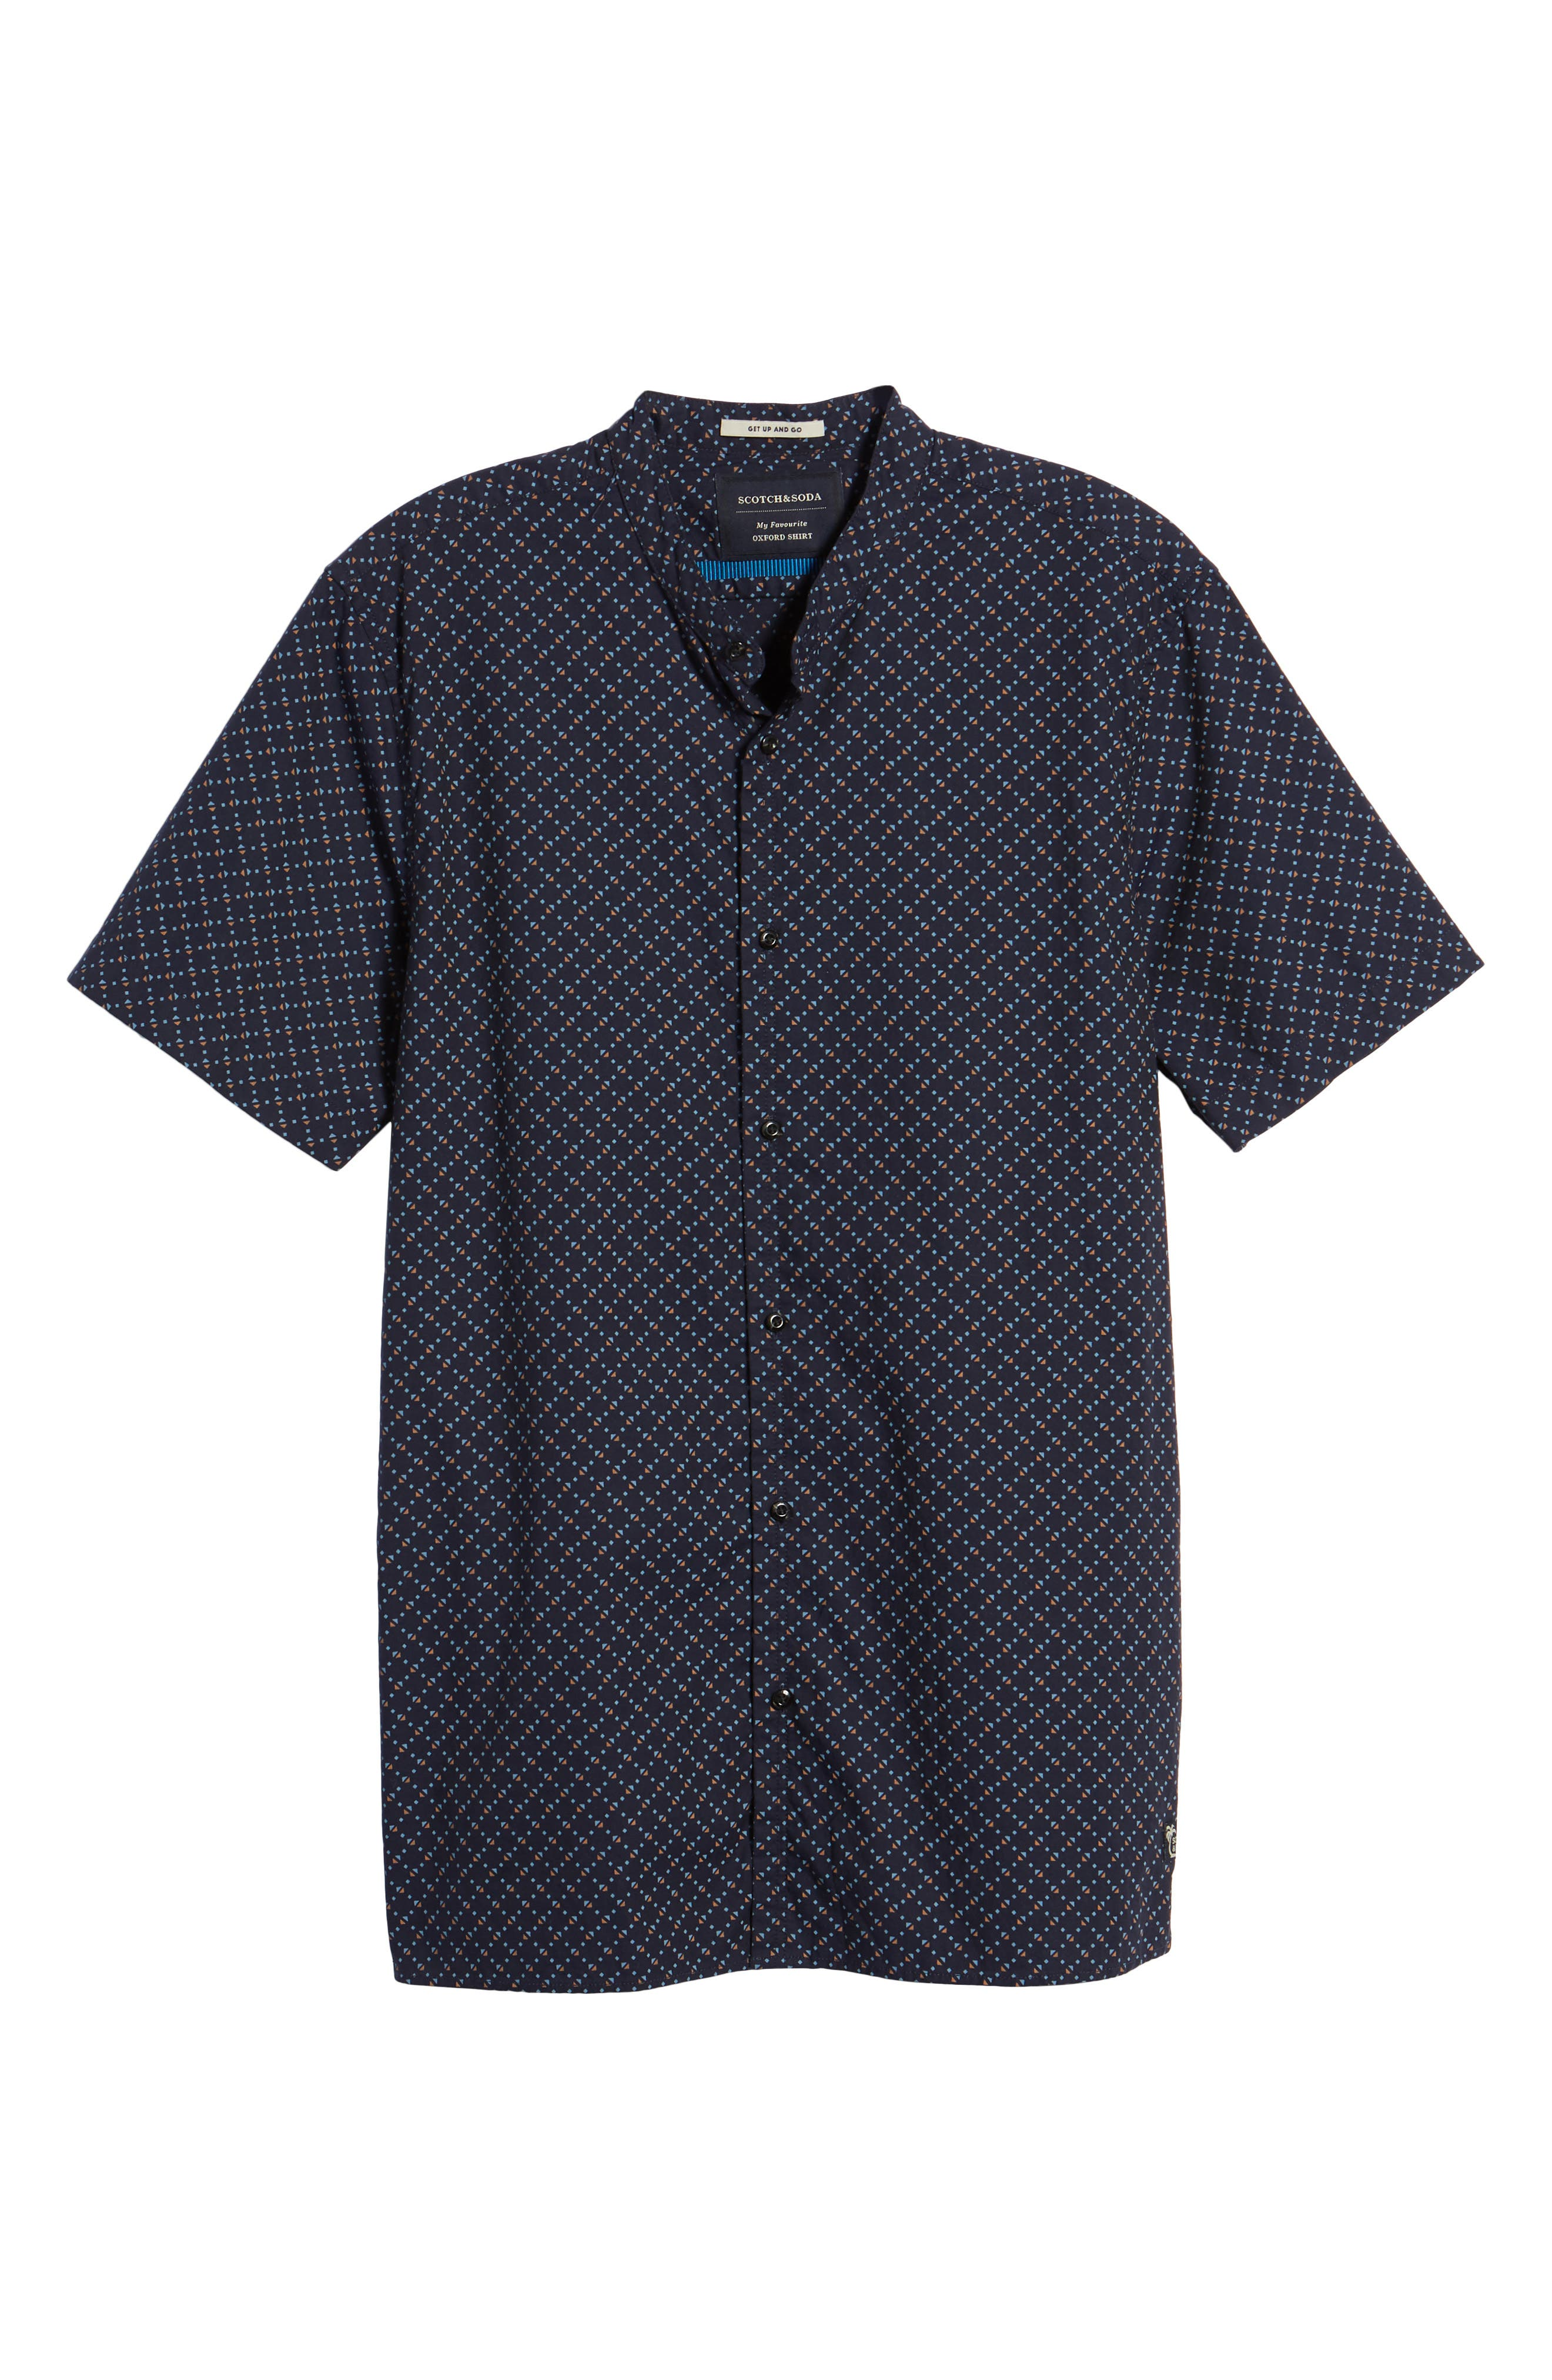 Woven Oxford Shirt,                             Alternate thumbnail 6, color,                             401